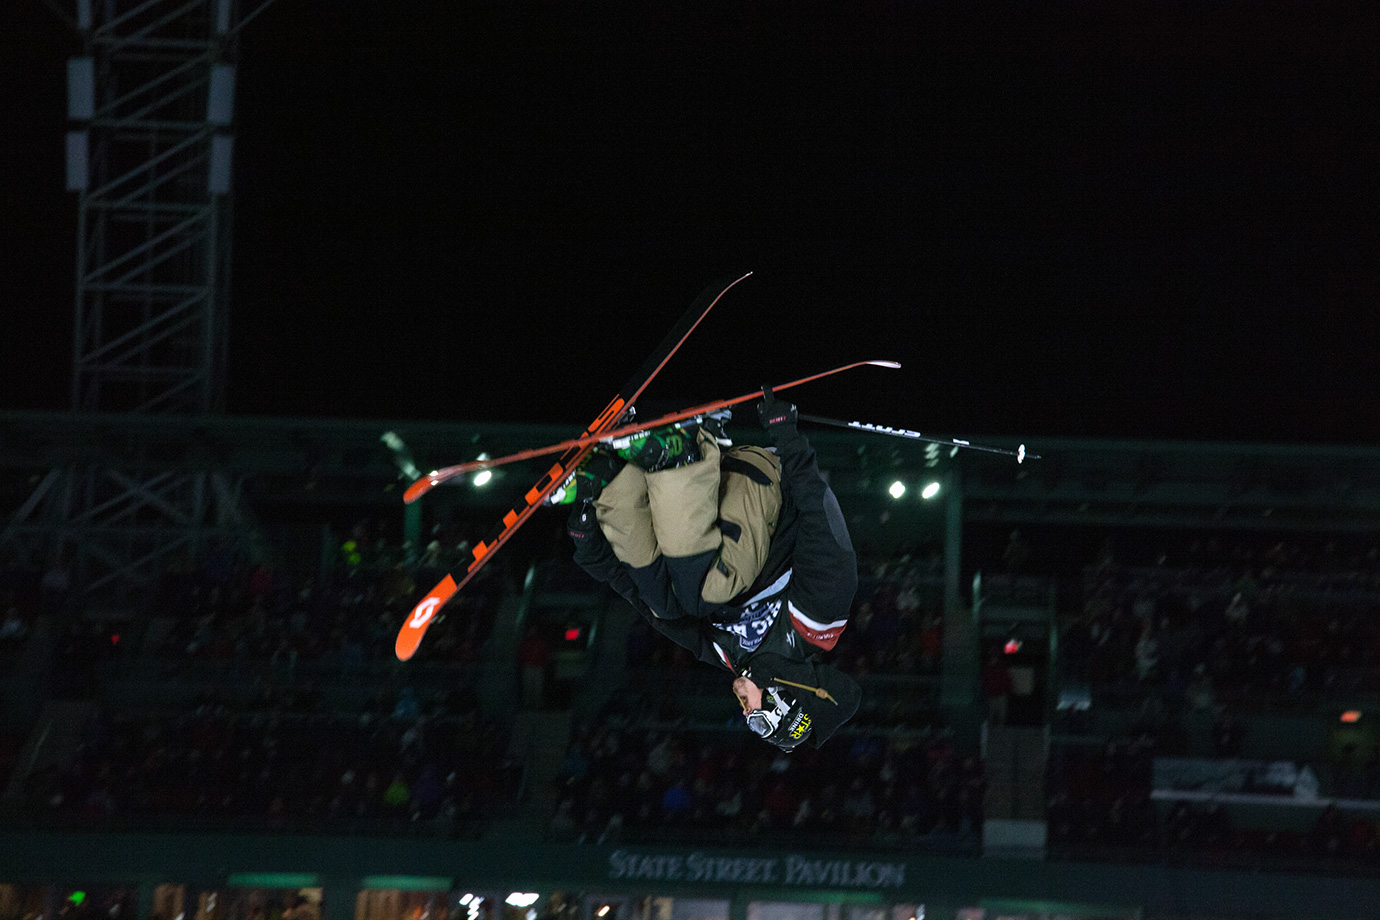 Klaus Finne catches air during the skiing Big Air final.